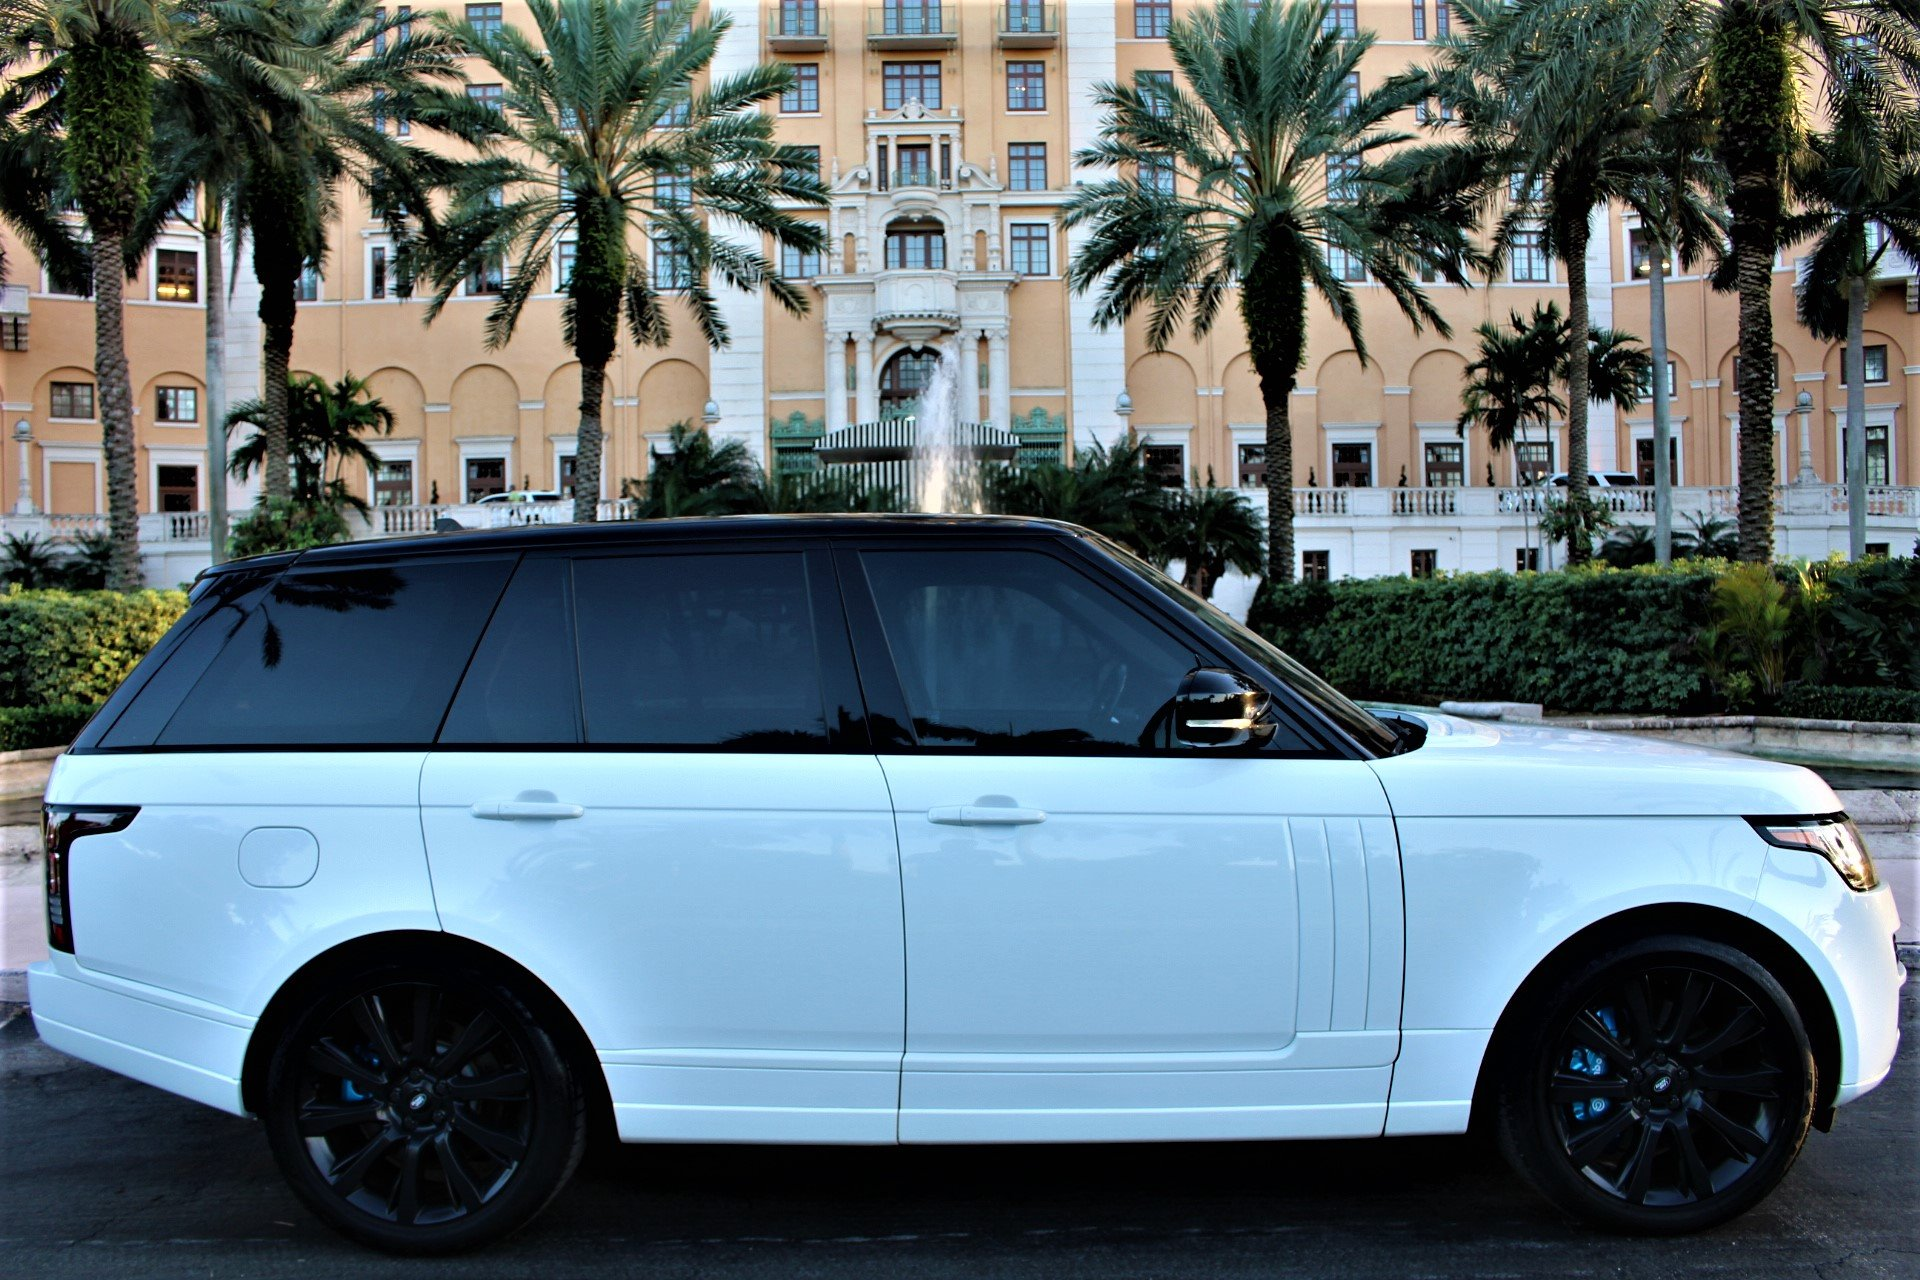 Used 2016 Land Rover Range Rover Supercharged for sale $53,850 at The Gables Sports Cars in Miami FL 33146 2